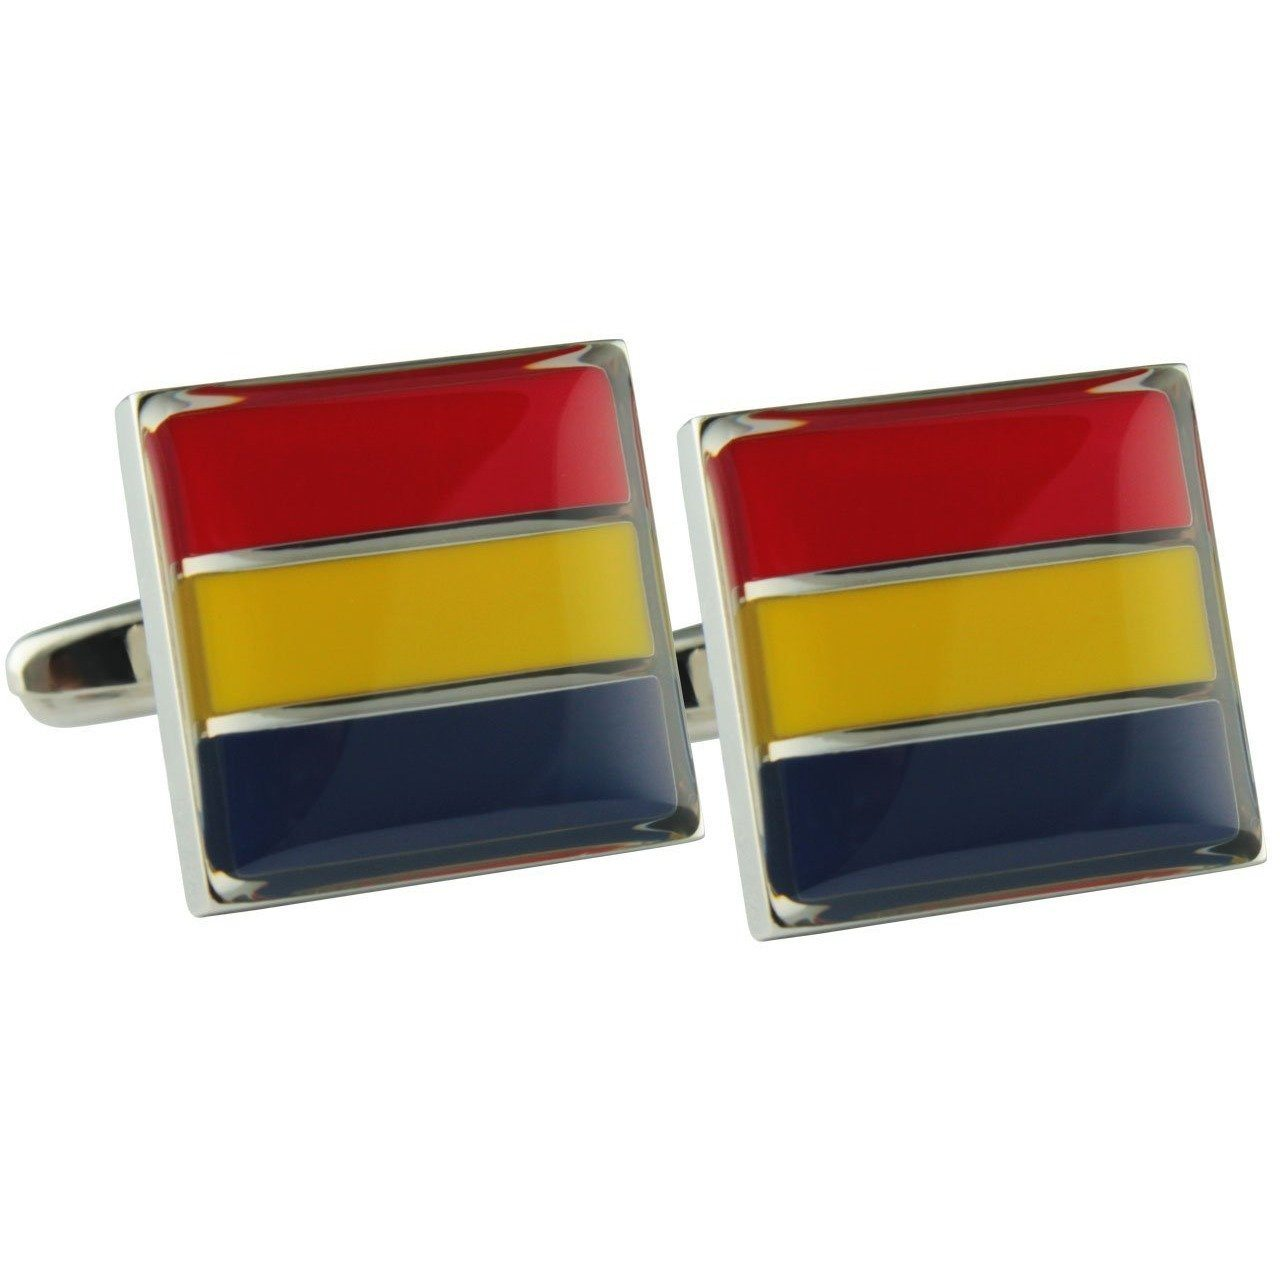 Colour Adelaide Crows AFL Cufflinks Clinks Australia